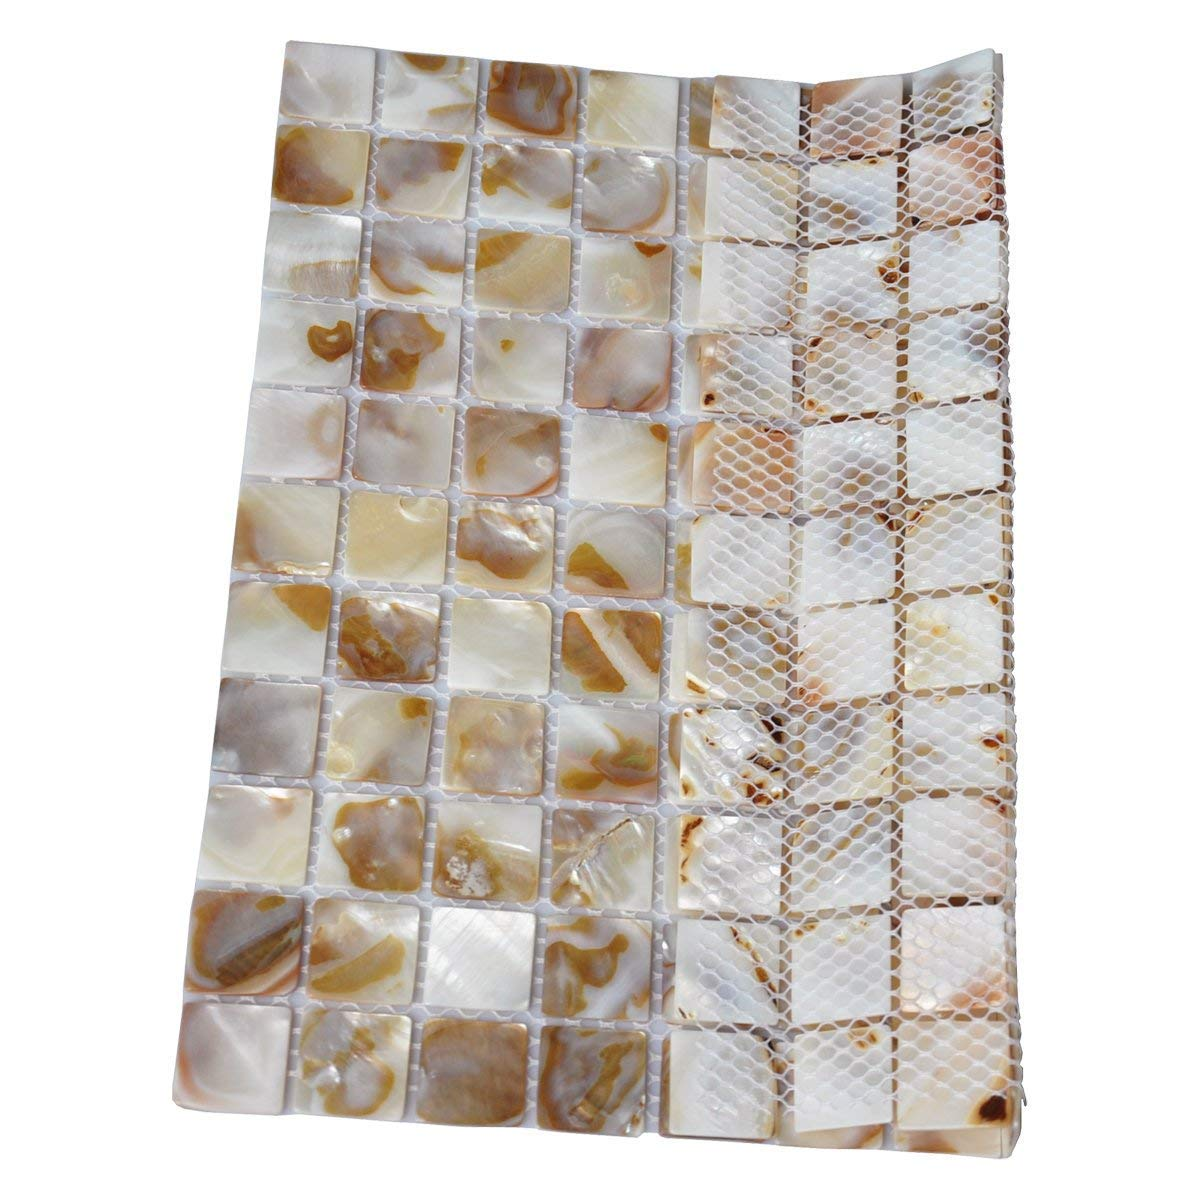 Genuine Mother of Pearl Natural Varied Mini Square Mosaic Tile 12 X 12 Vogue Tile Pack of 5 Sheets